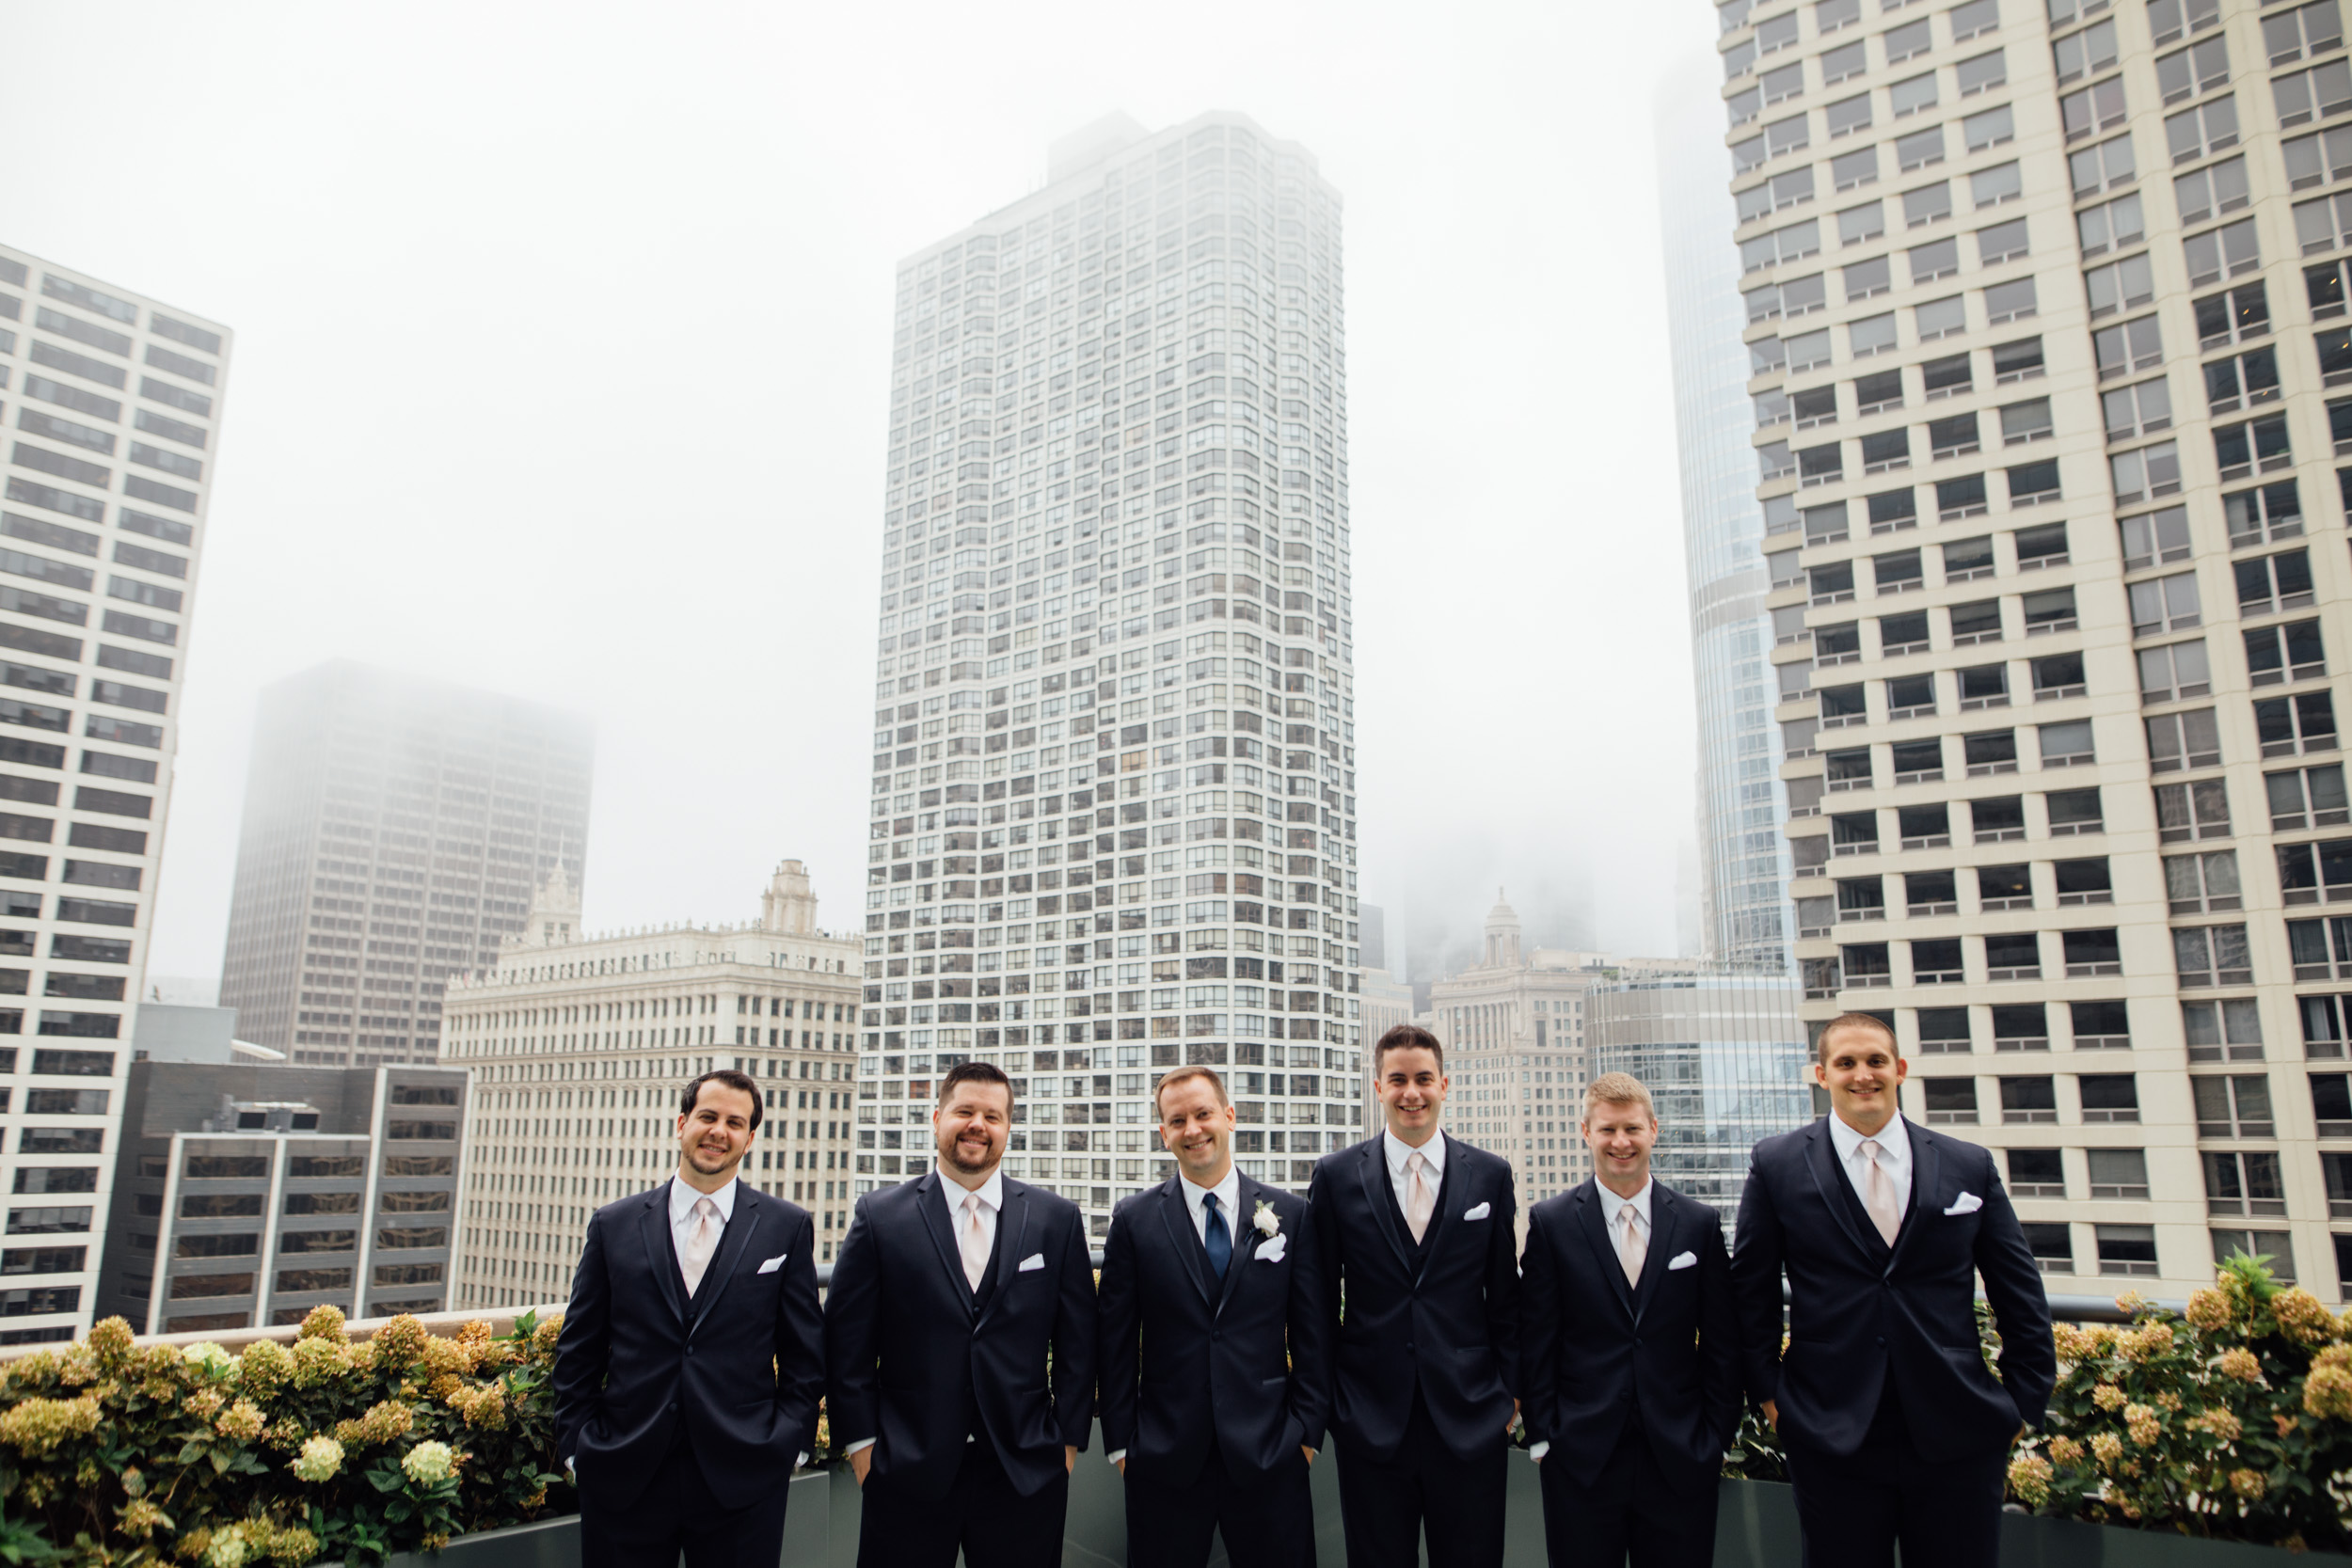 Downtown Chicago Wedding_Polly C Photography 1706135614.jpg